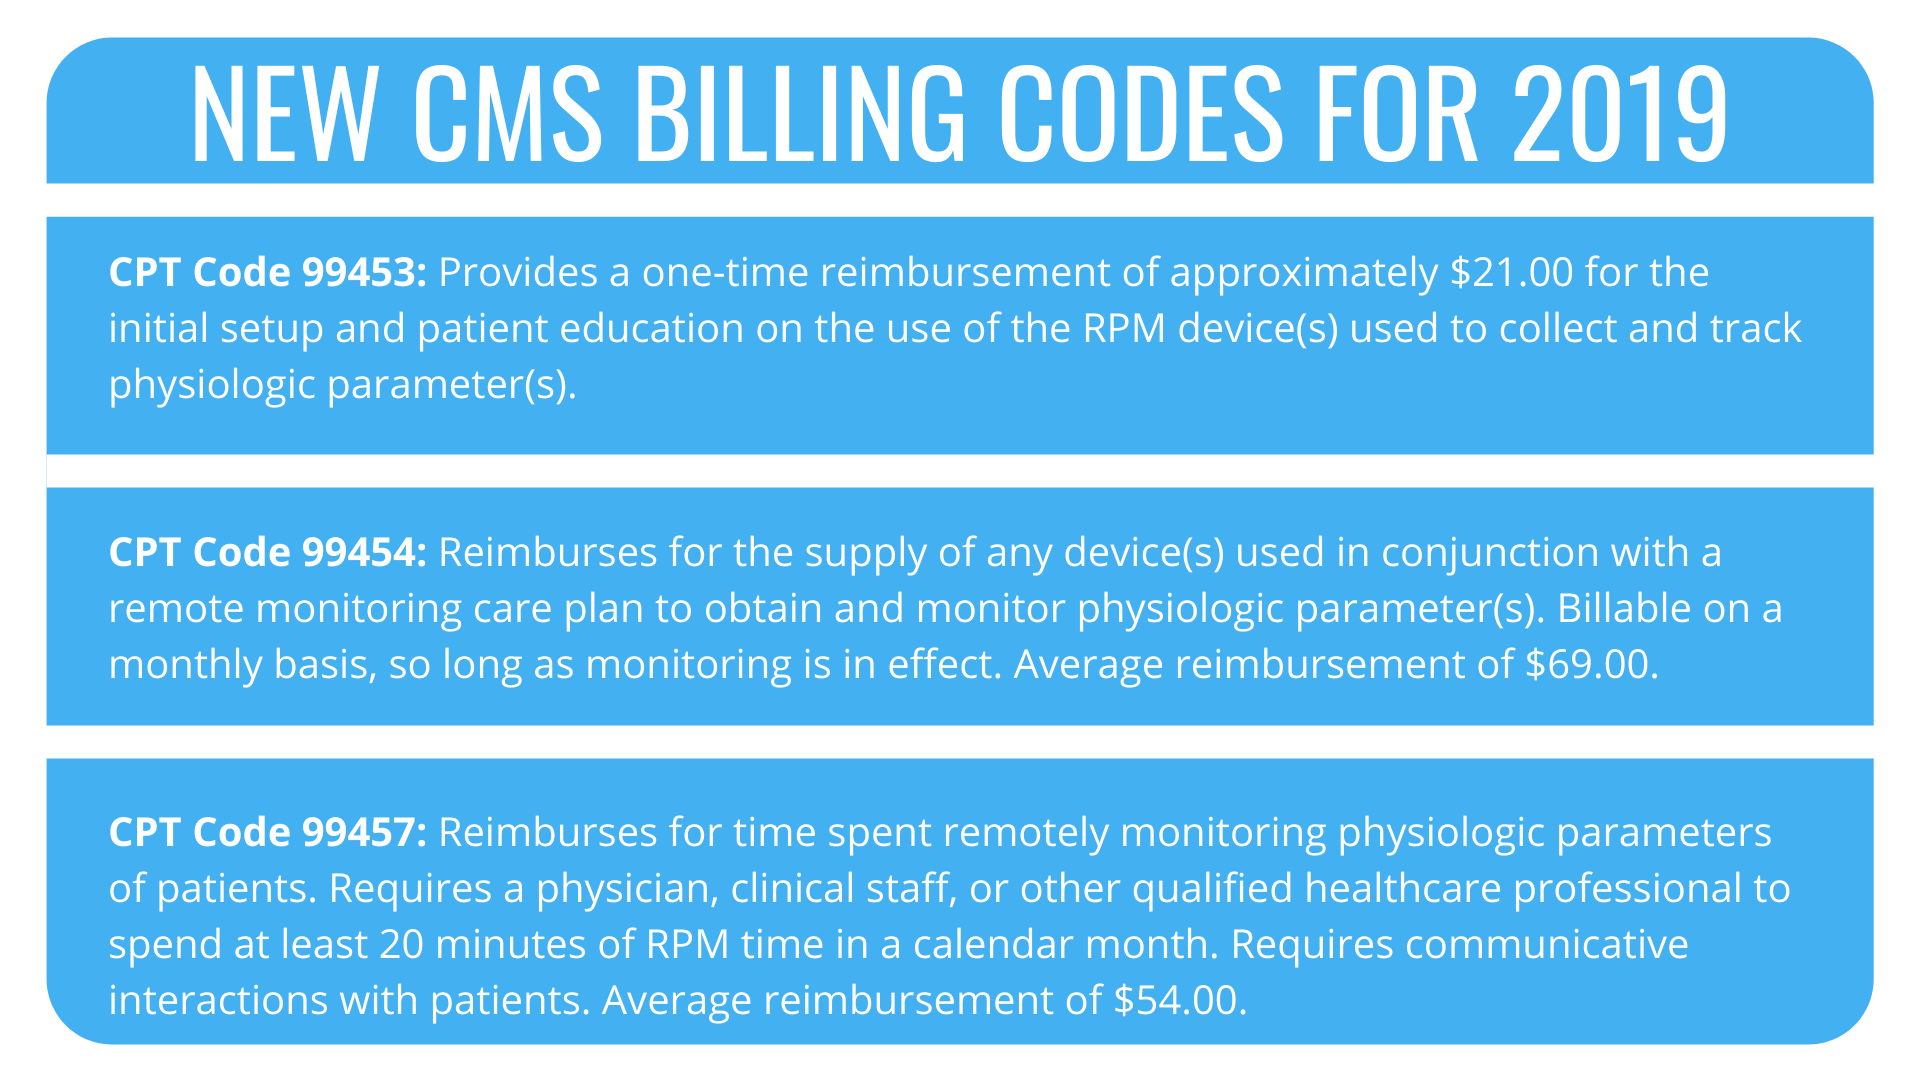 New CMS Billing Codes for 2019